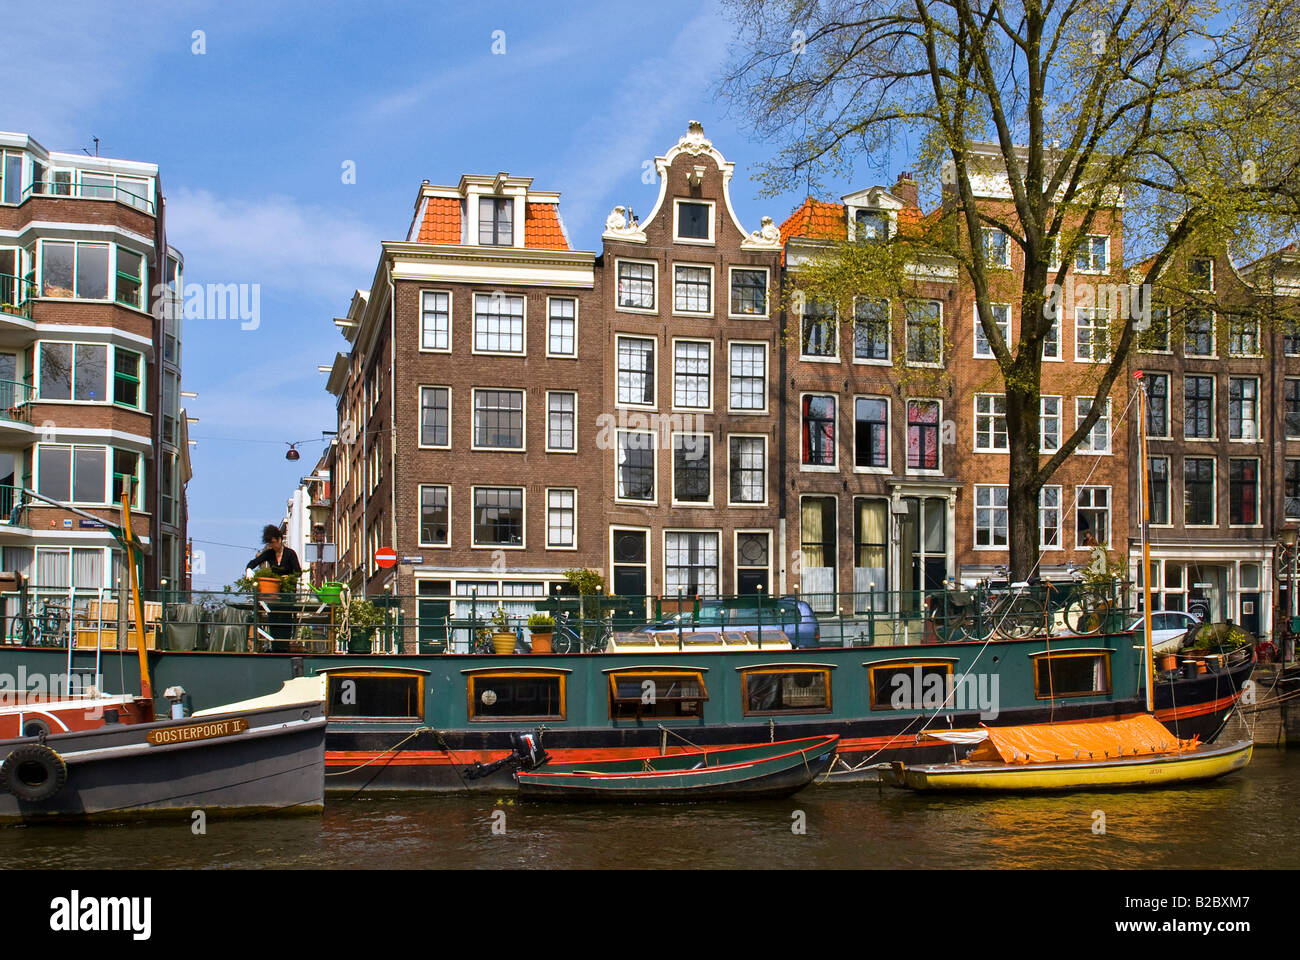 houseboats in front of buildings along the canals in amsterdam stock photo royalty free image. Black Bedroom Furniture Sets. Home Design Ideas